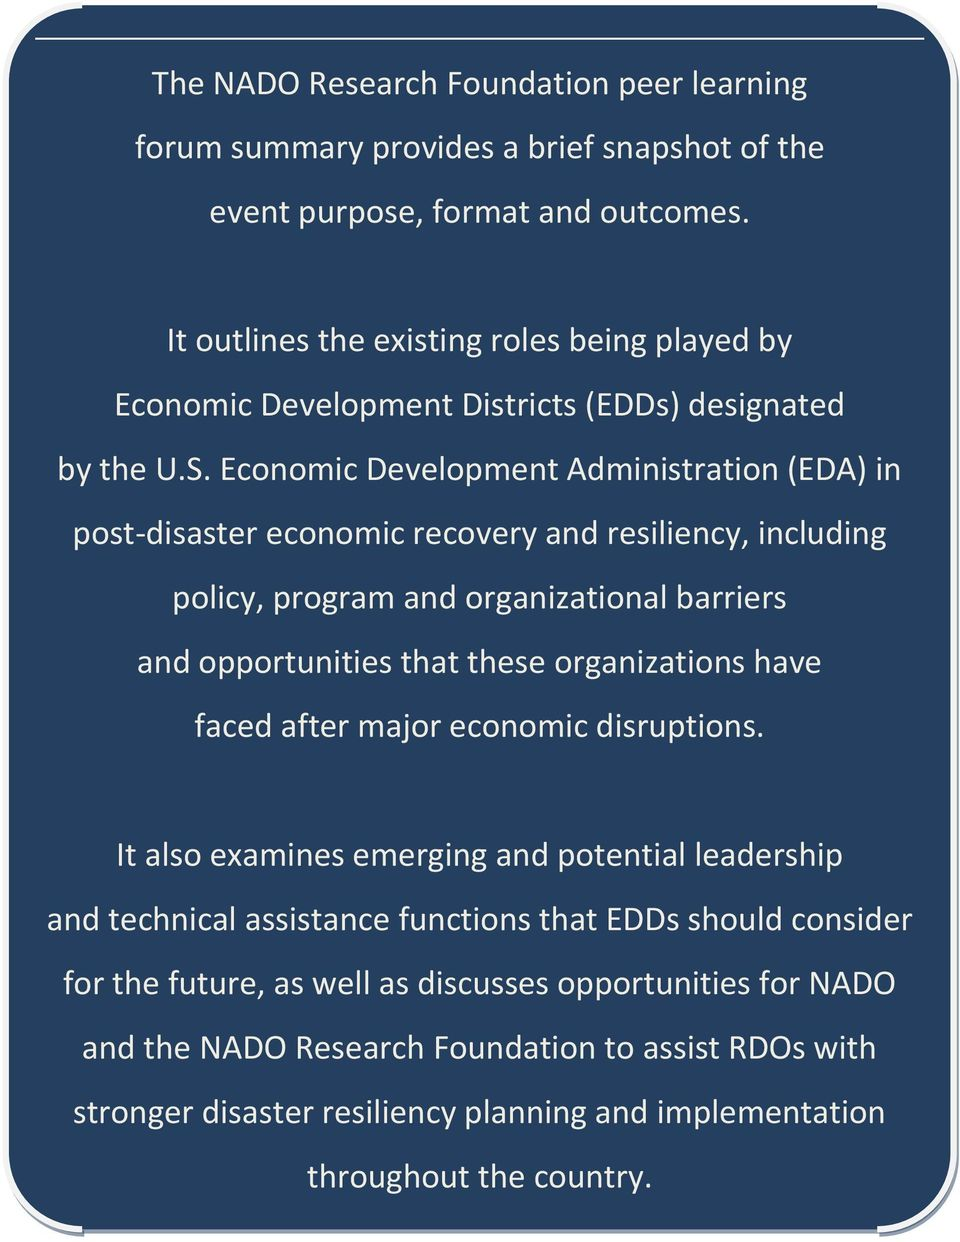 Economic Development Administration (EDA) in post-disaster economic recovery and resiliency, including policy, program and organizational barriers and opportunities that these organizations have